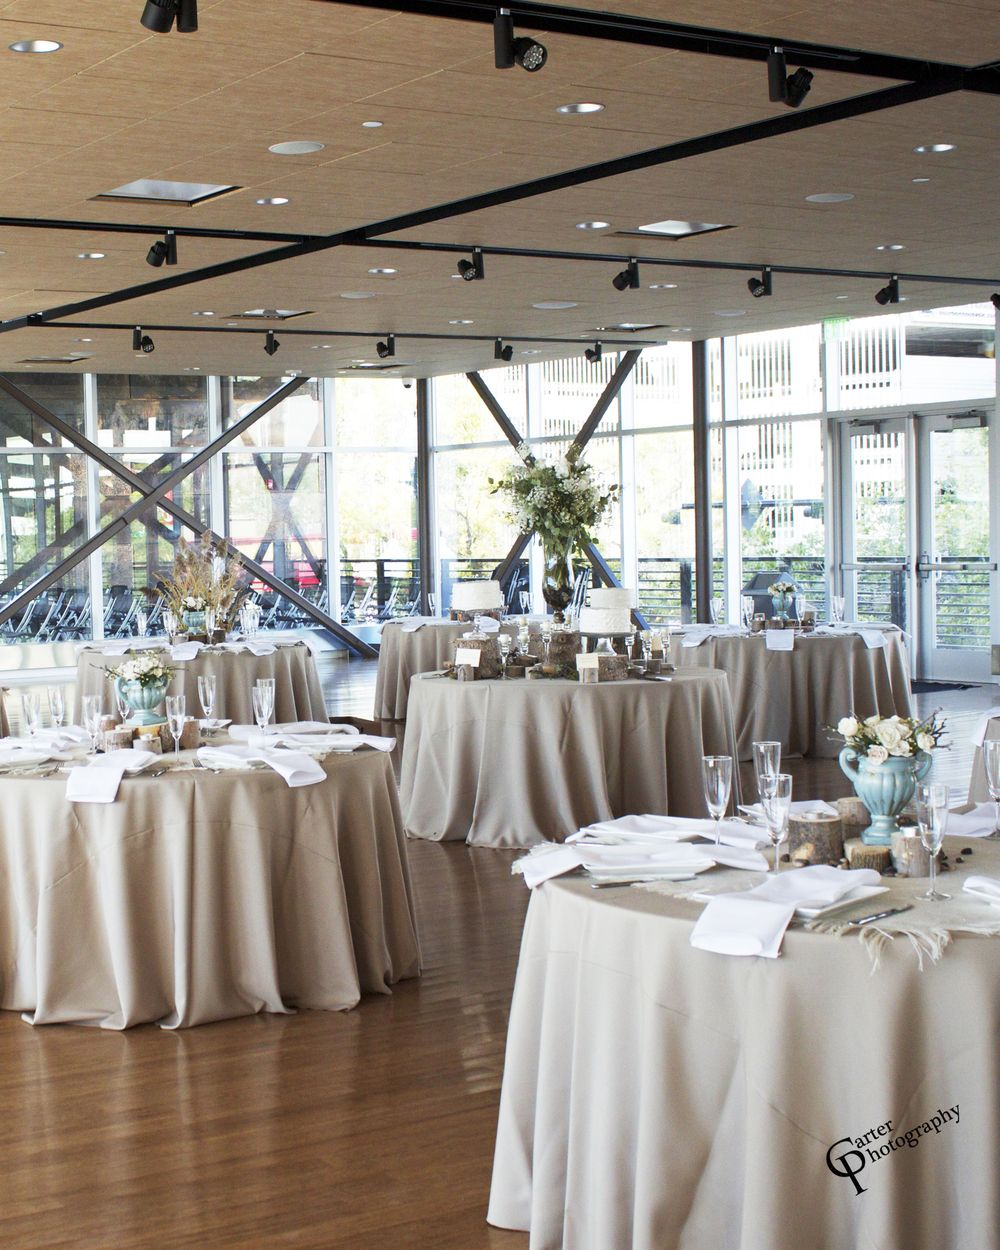 Need To Remember The Gallivan Center For Wedding Less Expensive Both Indoor And Outdoor